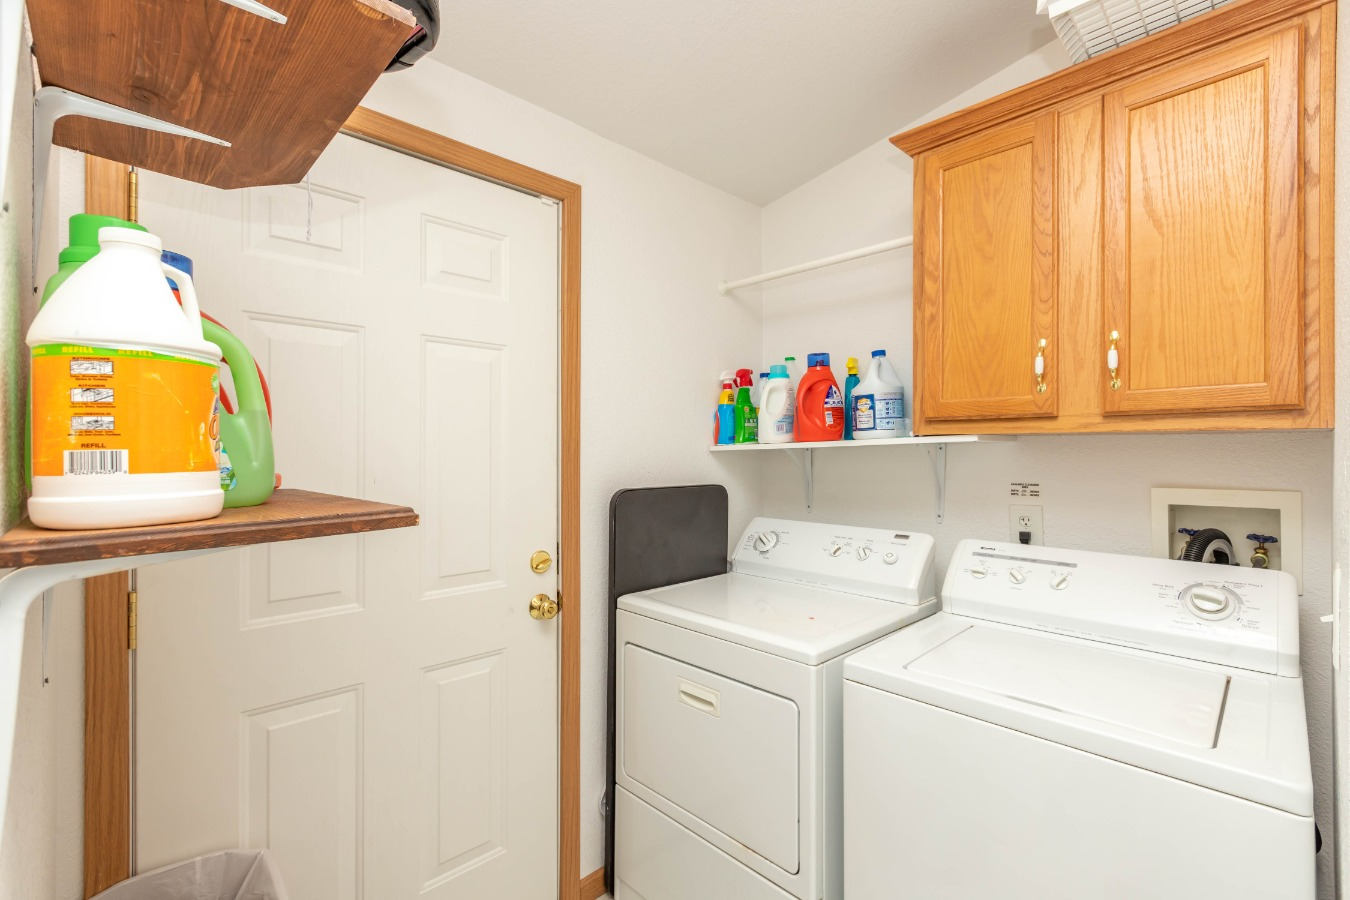 Magnolia , Retirement, Easy living, Perfect for couples, Nicest and biggest in park, quite, convenient, local shopping, situated between loveland and fort collins.